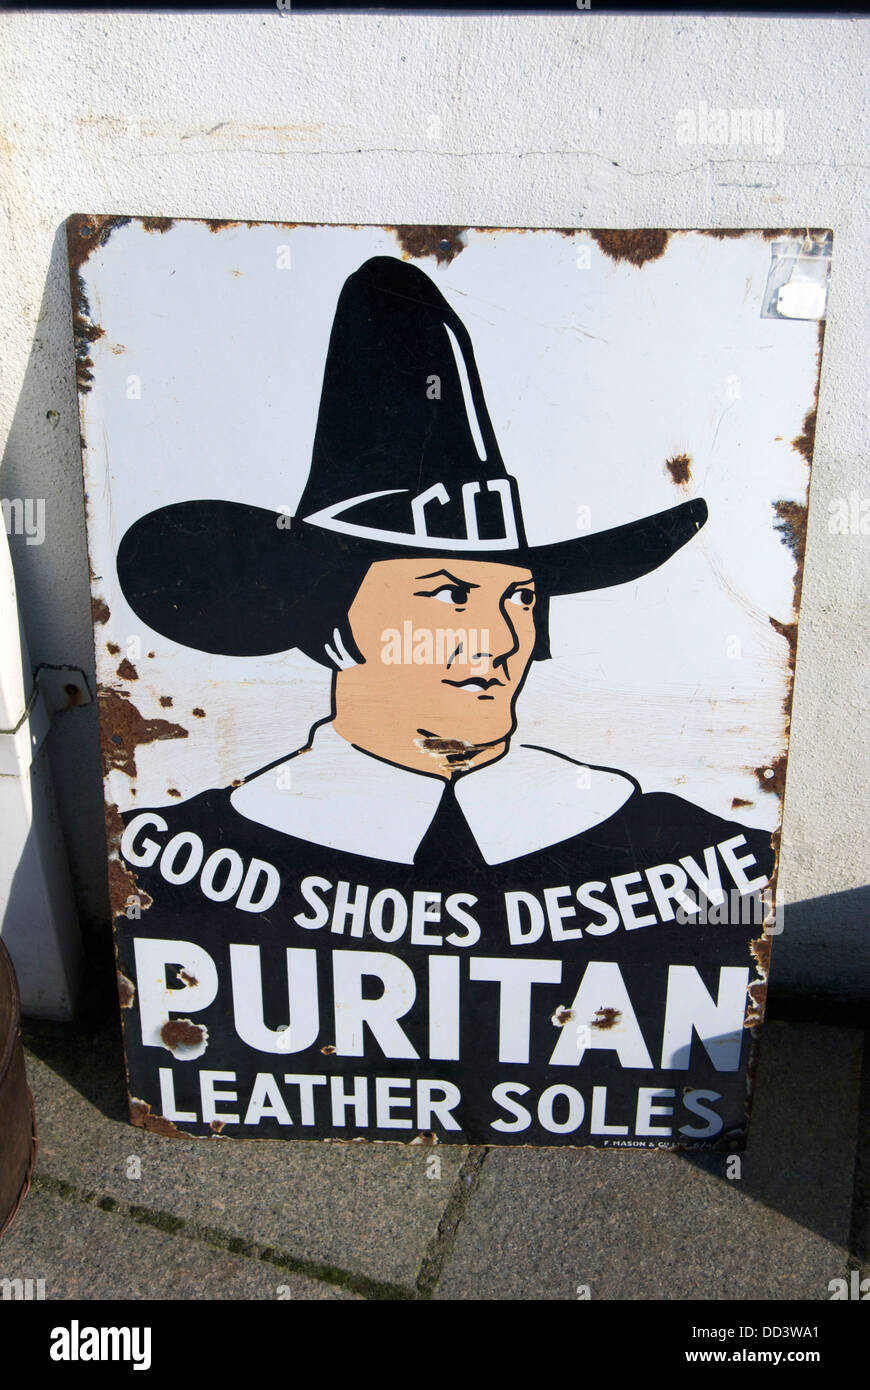 An old metal advertising sign for Puritan Leather Soles - Stock Image